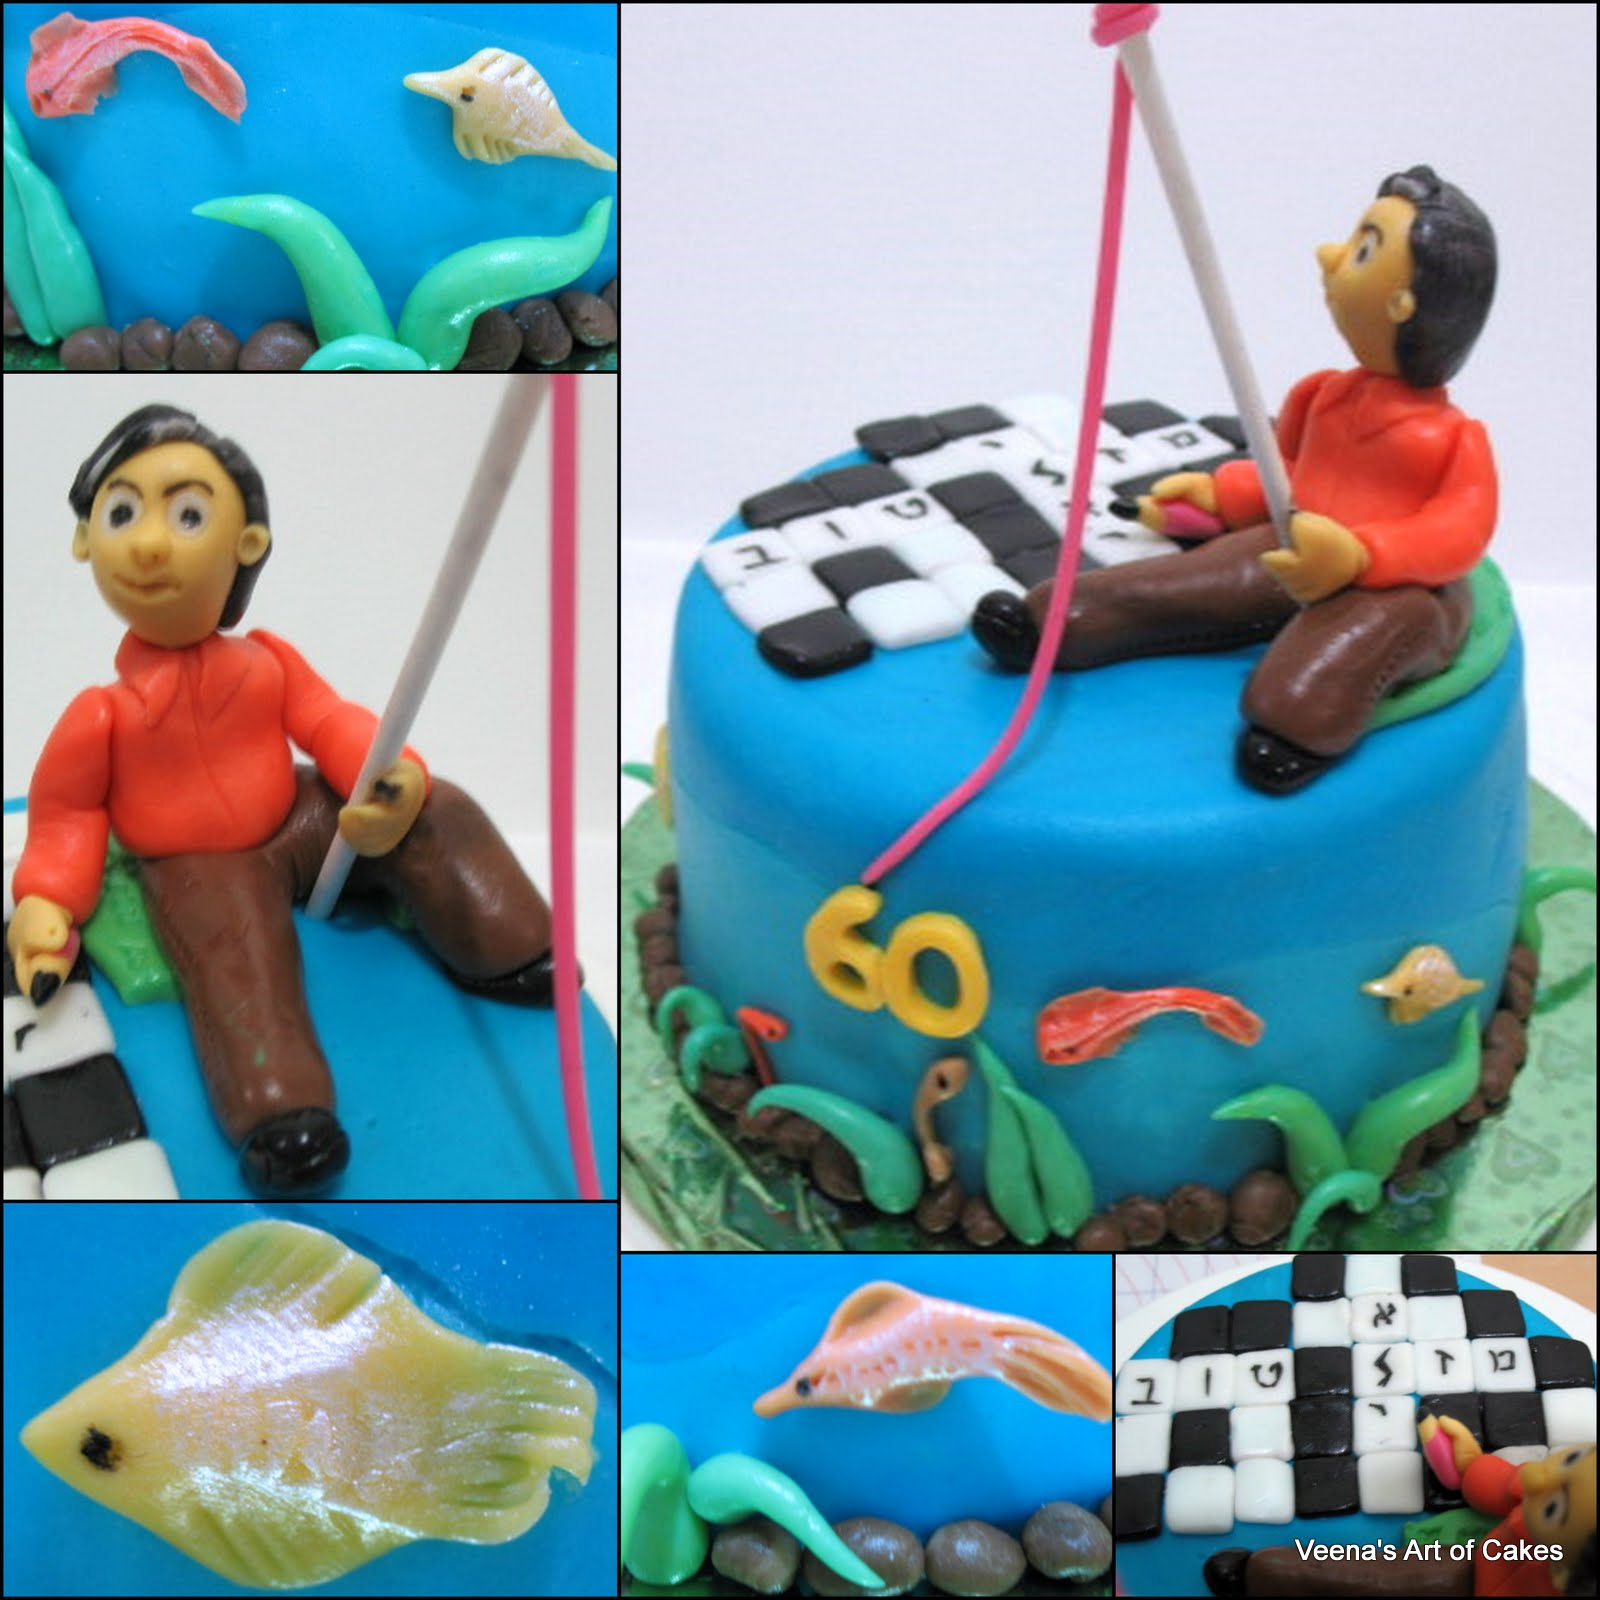 http://3.bp.blogspot.com/-nvV9JtCRZEo/TzjXKLn0RcI/AAAAAAAAD_4/lKgNnaMqPM8/s1600/Crossword%20and%20Fishing%20Cake.jpg